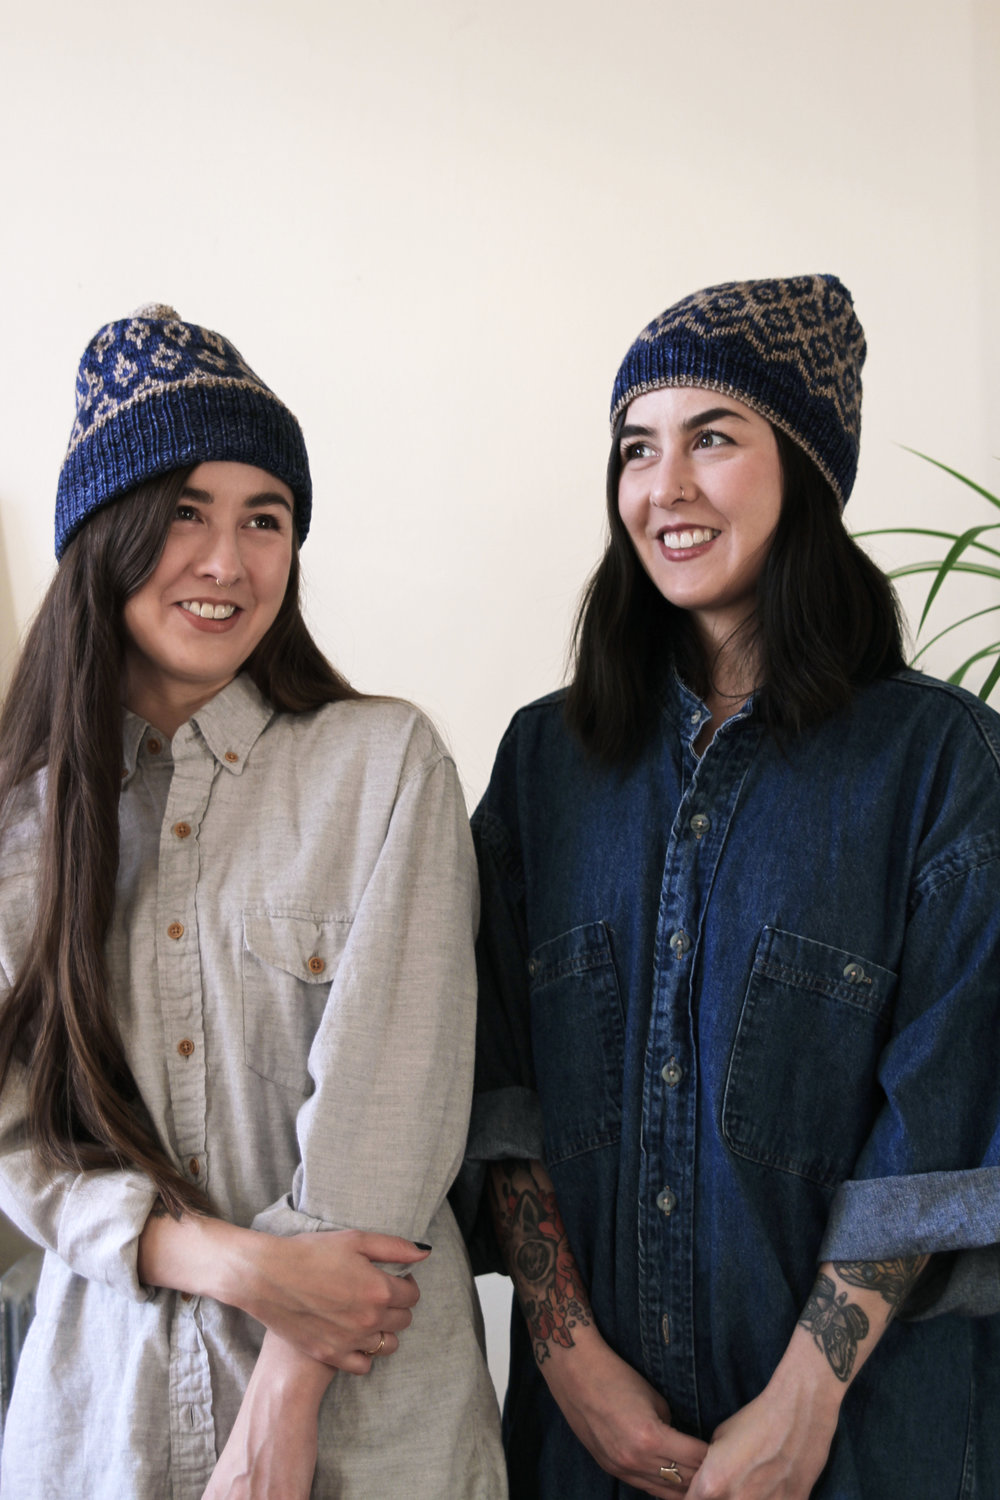 Half Japanese twin women wearing hand knit toques.